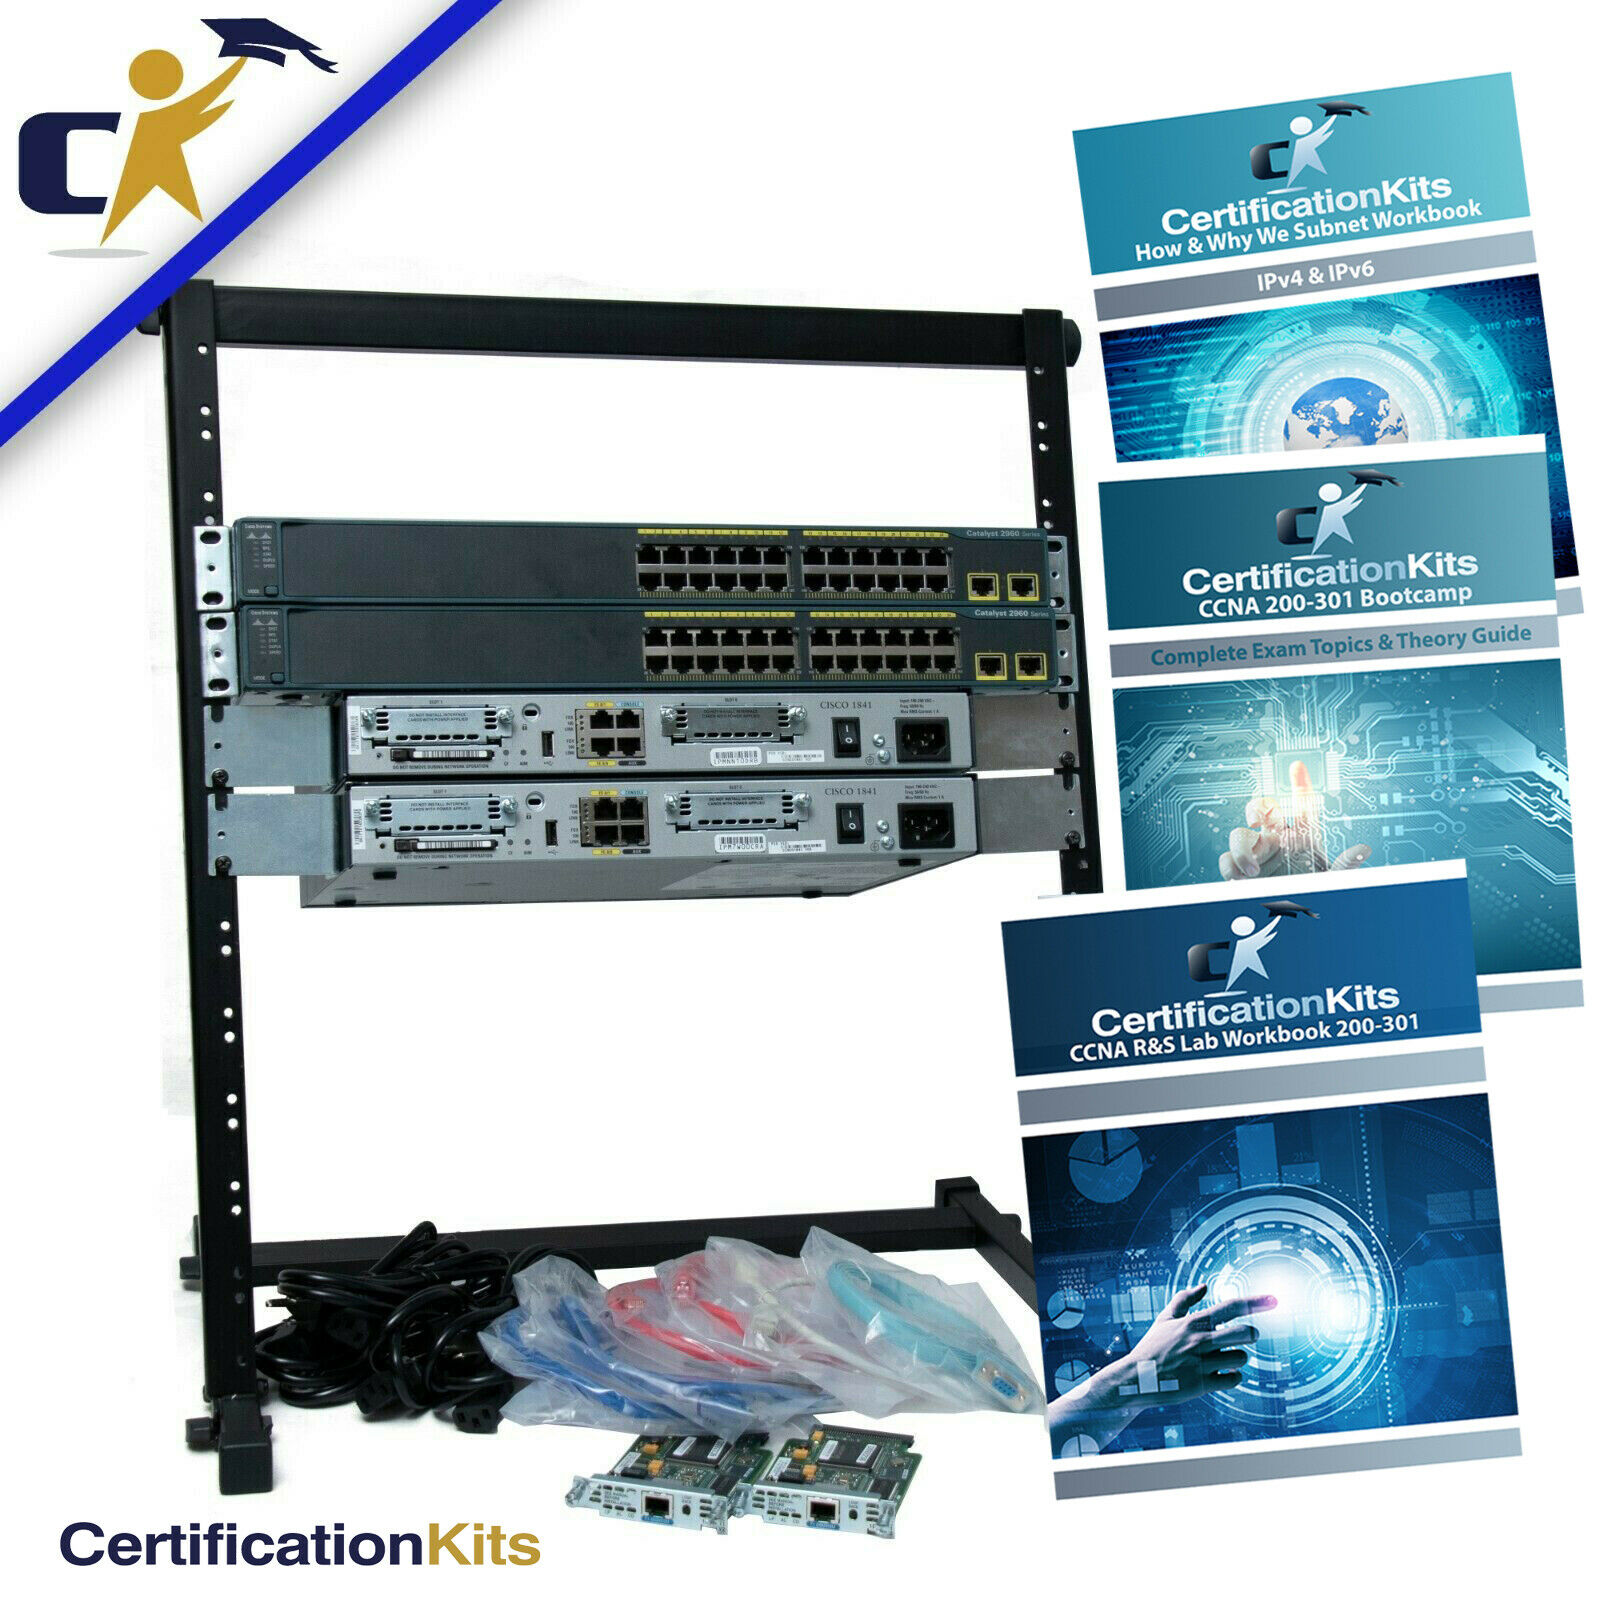 Basic 2 Router Switch Ccna Lab Kit 200 120 125 1 Year Wnty Cisco 2960 S Diagram And Catalyst Switches Comparison Of 3free Shipping